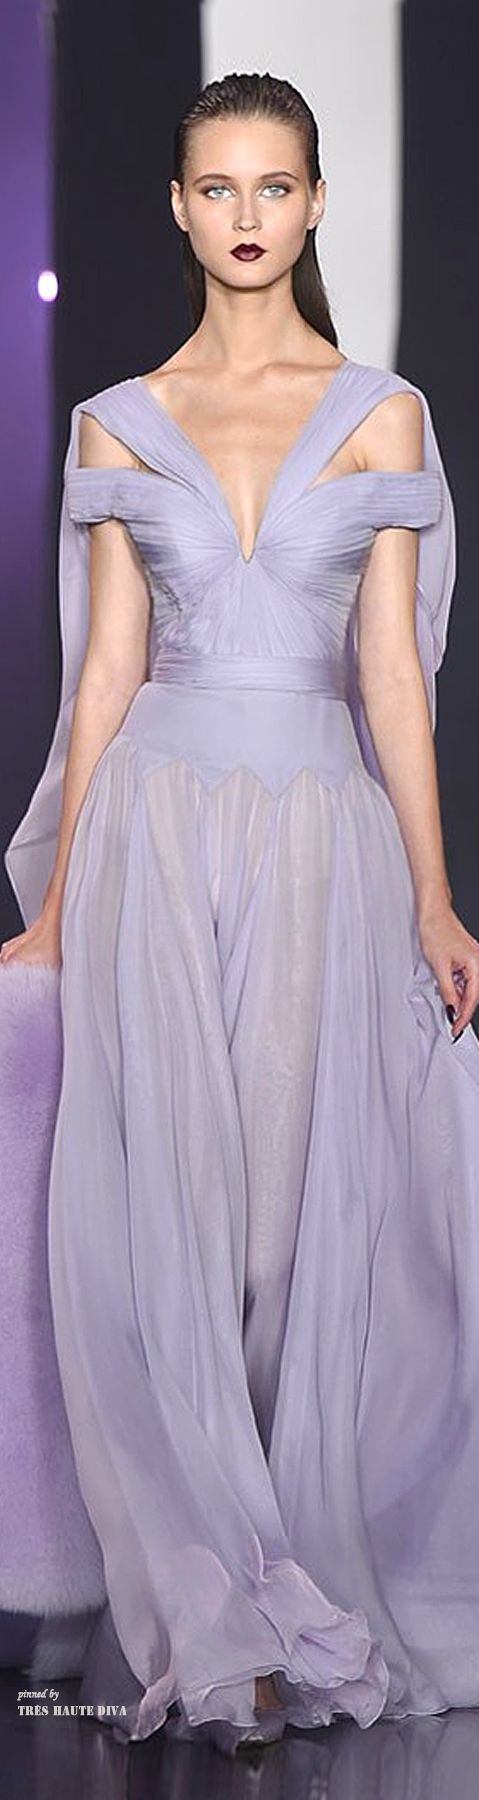 Pantone Color 2015 February...Sheer lilac...Ralph & Russo Couture